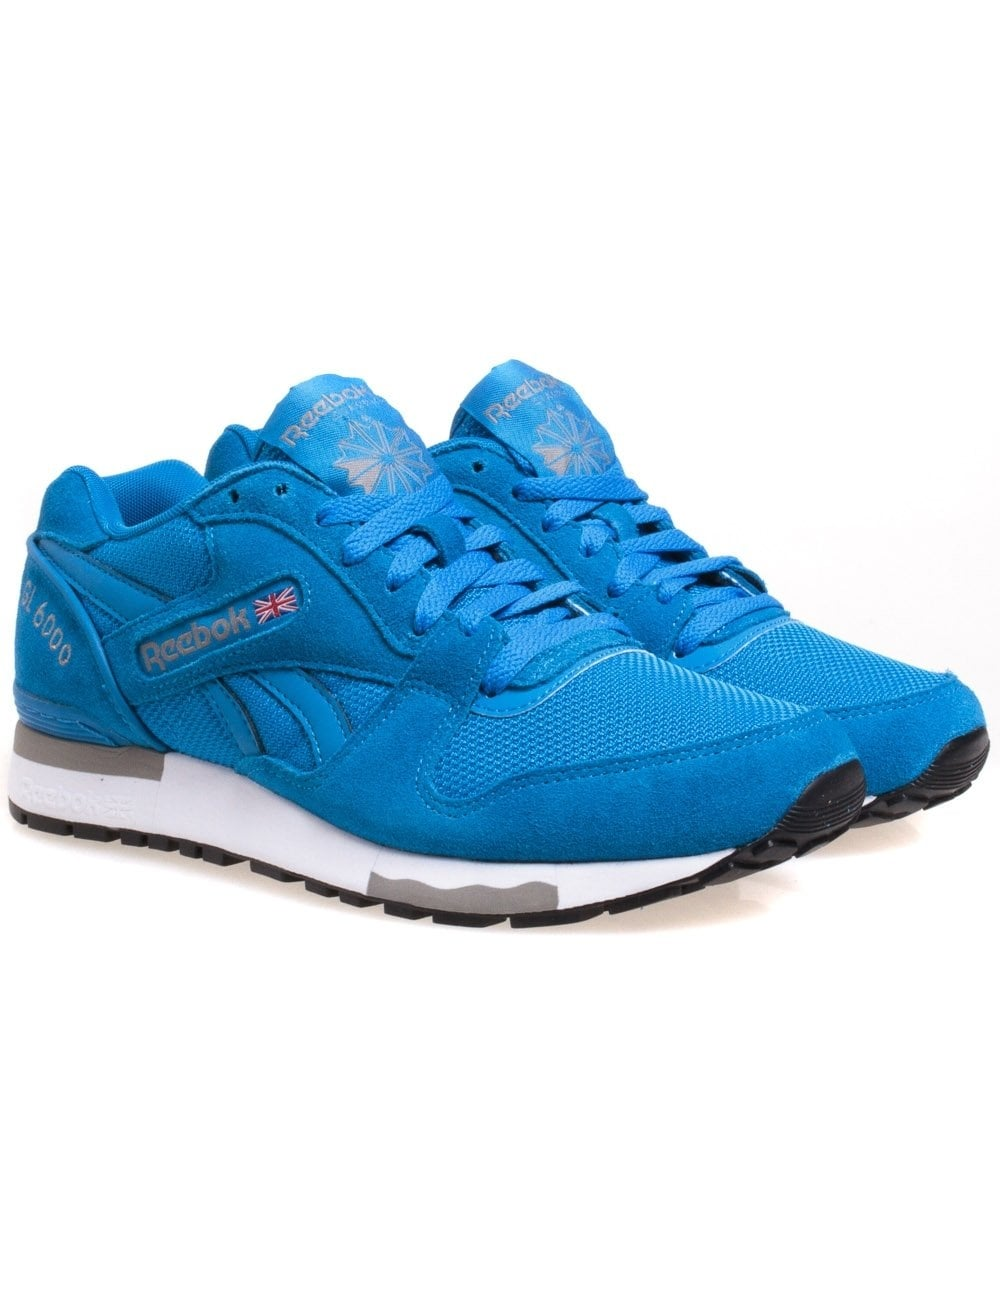 reebok gl 6000 blue cement reebok from fat buddha store uk. Black Bedroom Furniture Sets. Home Design Ideas